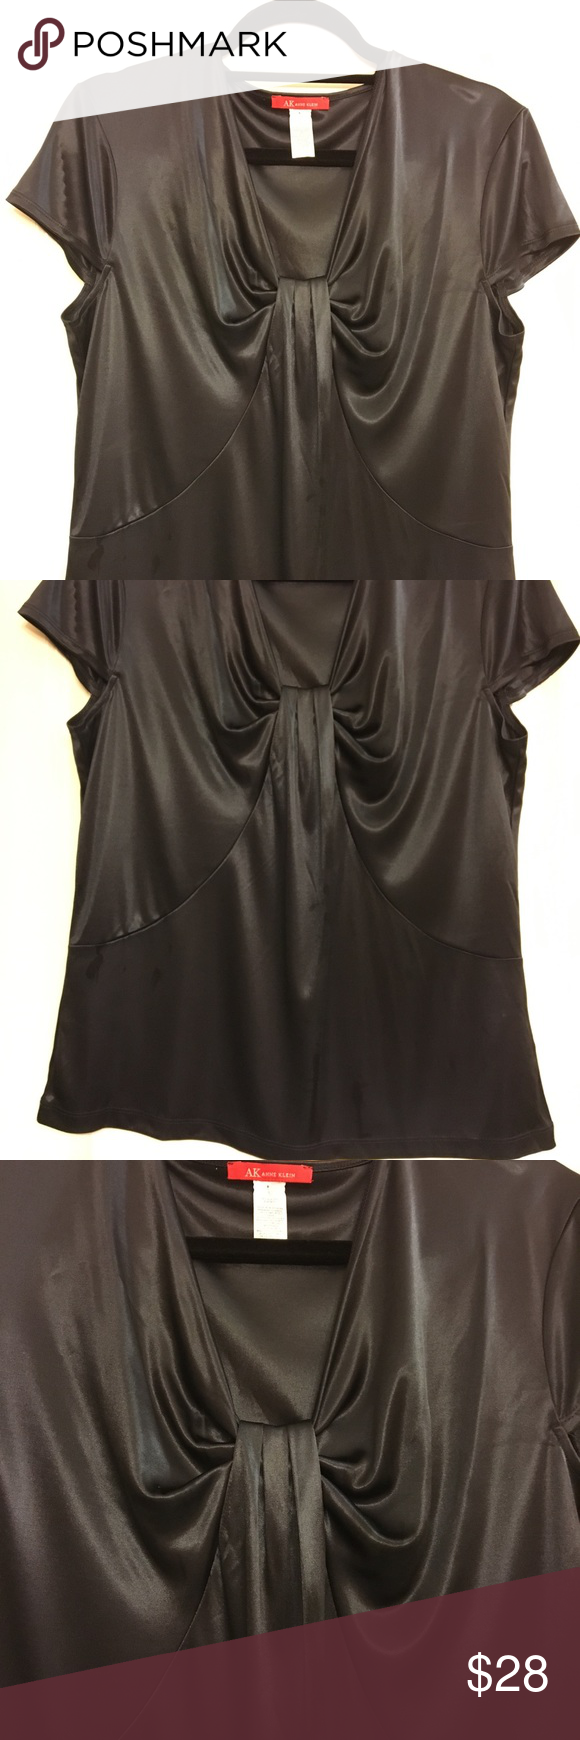 Anne Klein Women's Black Pull-over Blouse NWT - Anne Klein black blouse   Cute with jeans or dress it up for work Anne Klein Tops Blouses